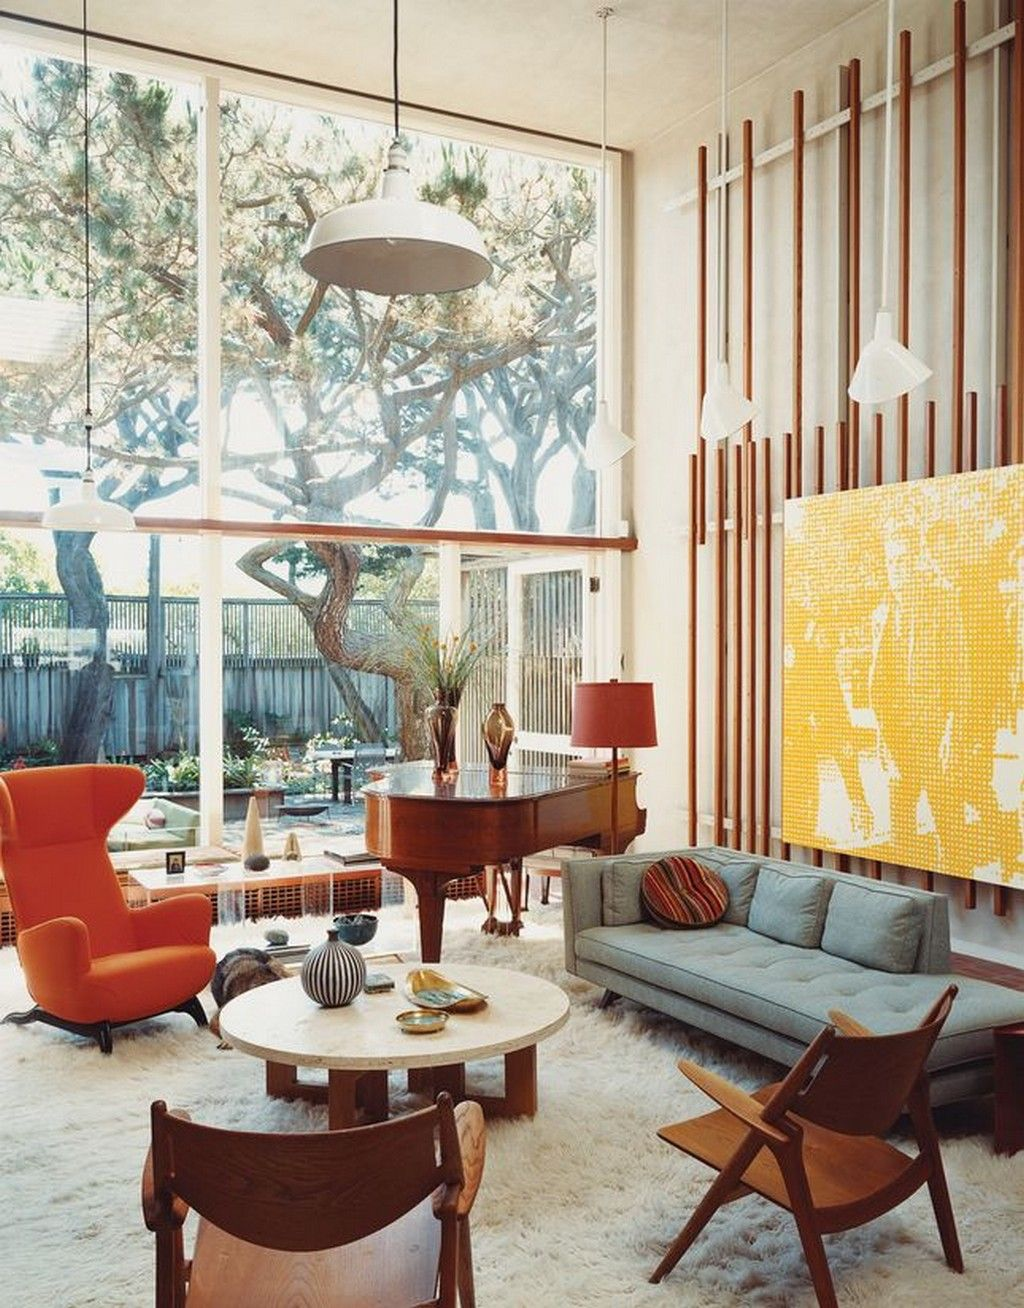 60s retro interior design images for 60s apartment design